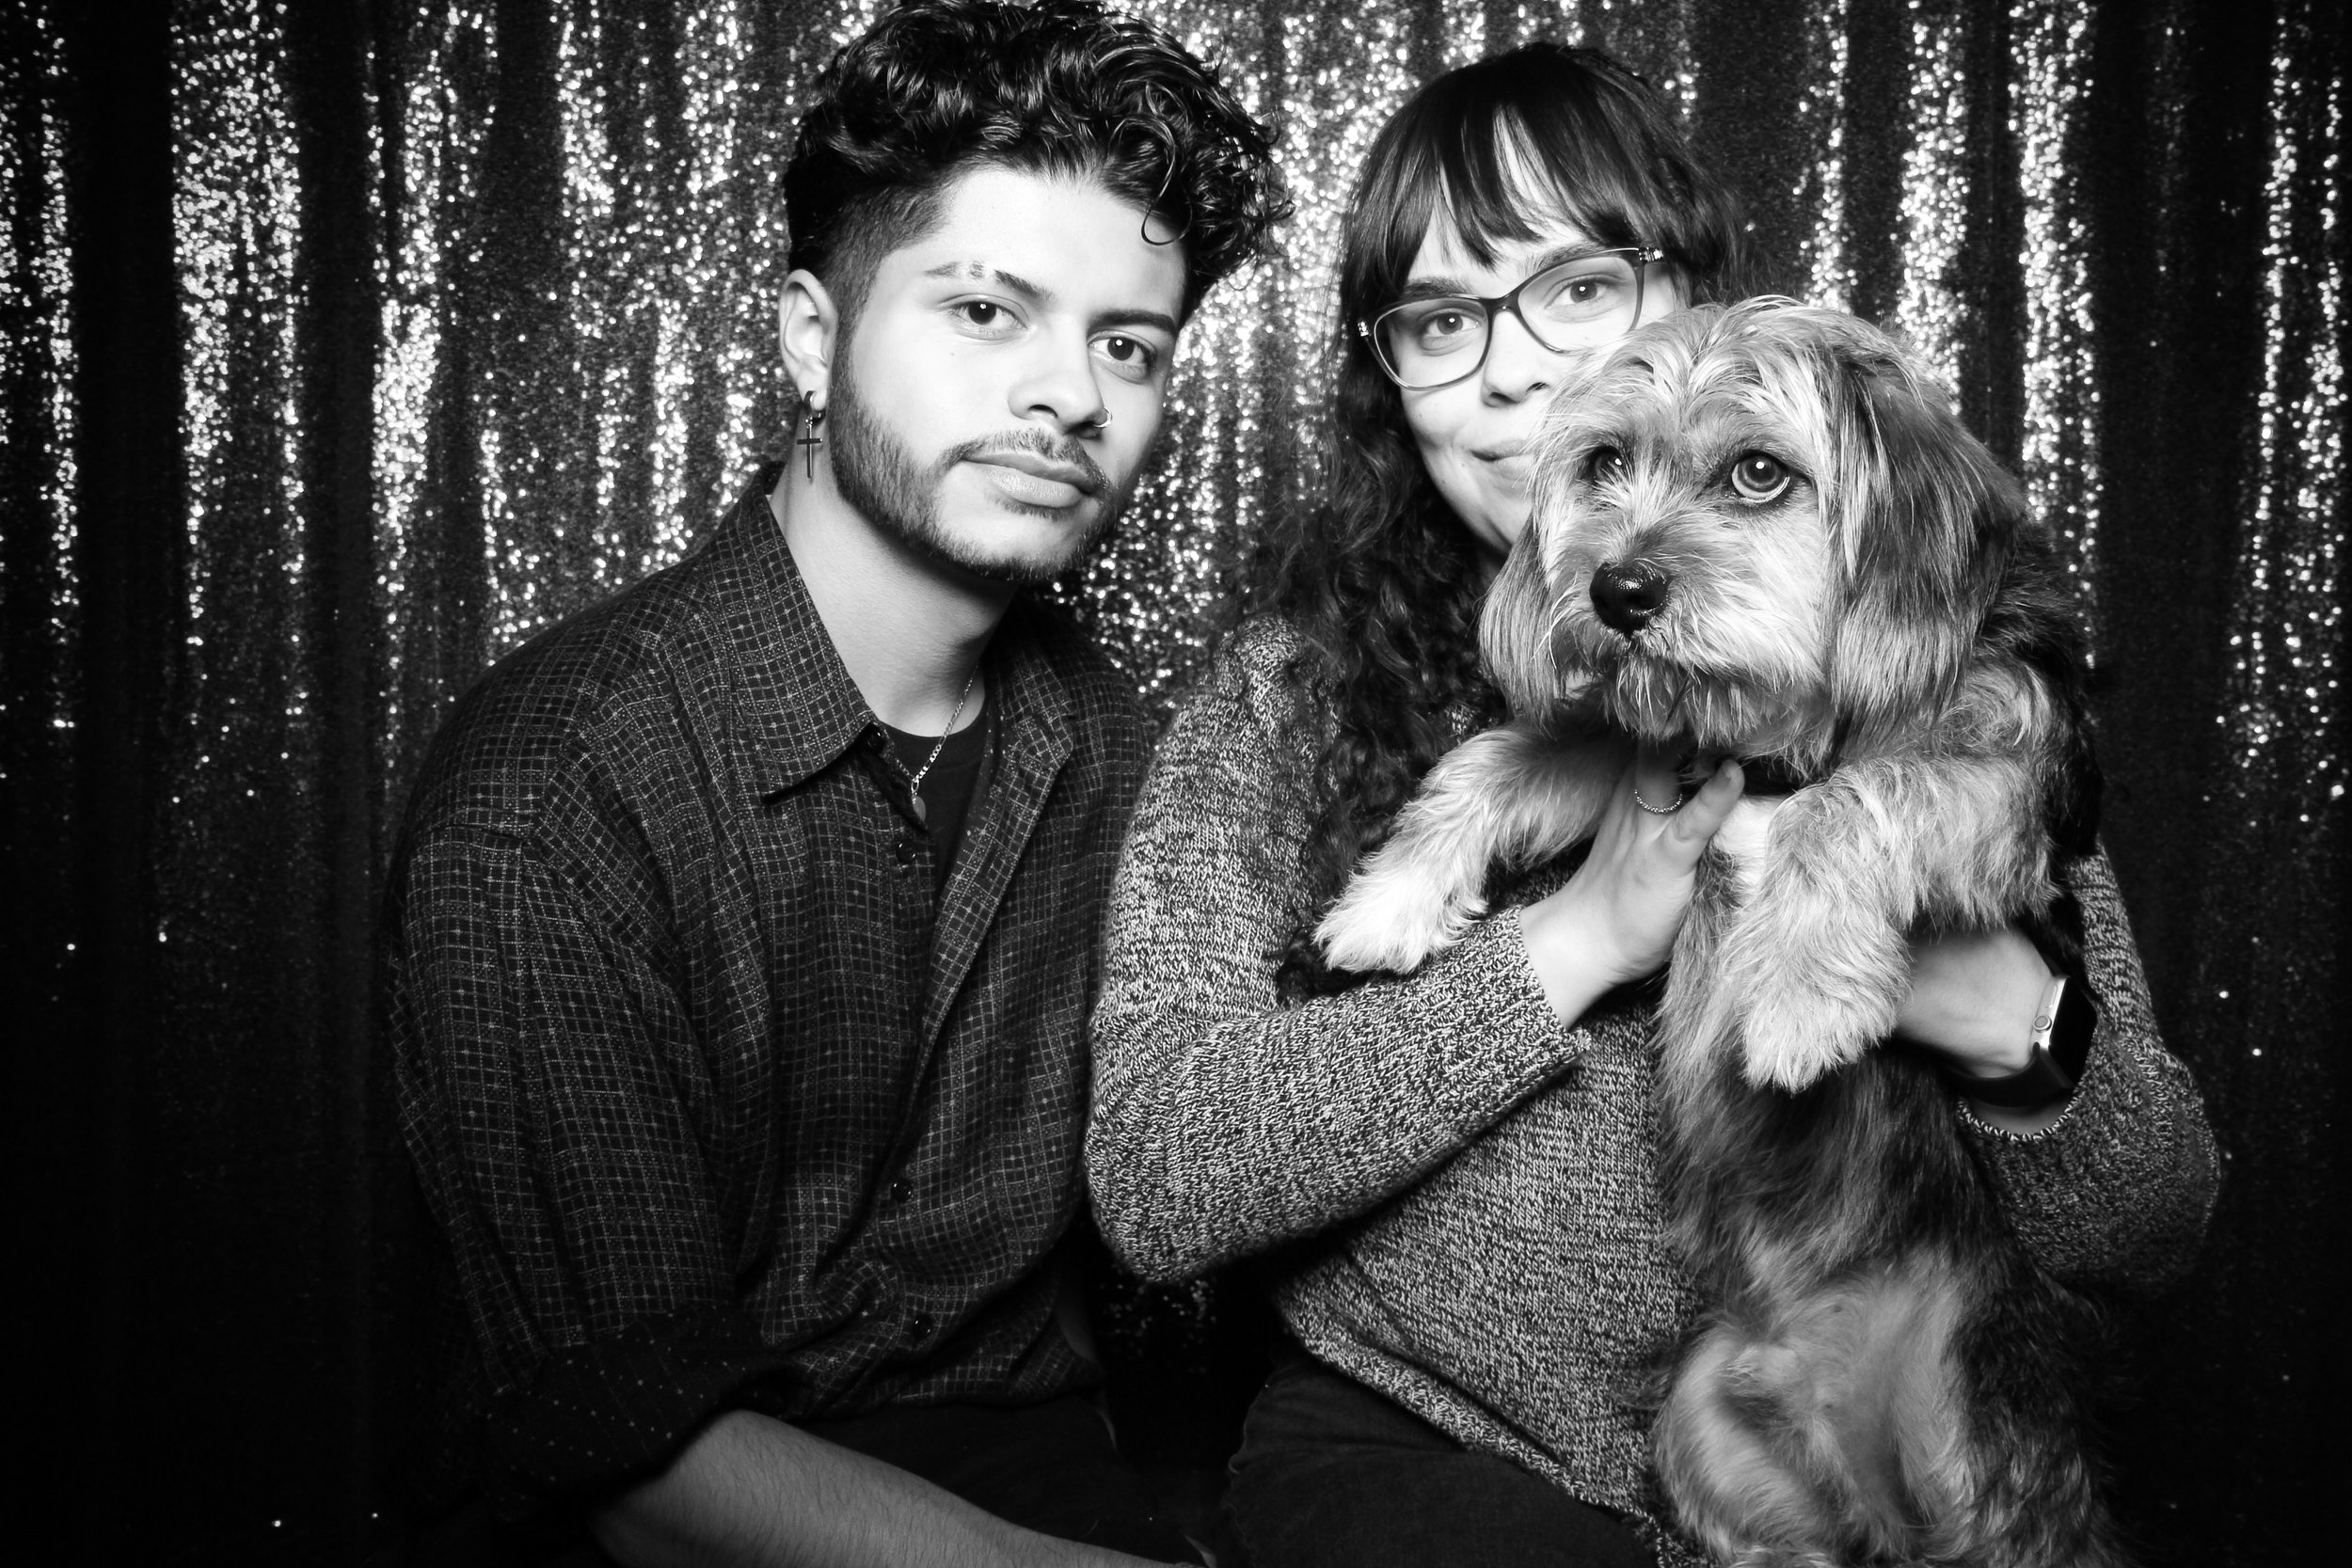 Chicago_Vintage_Photobooth_Valentines_Day_Dog_17.jpg